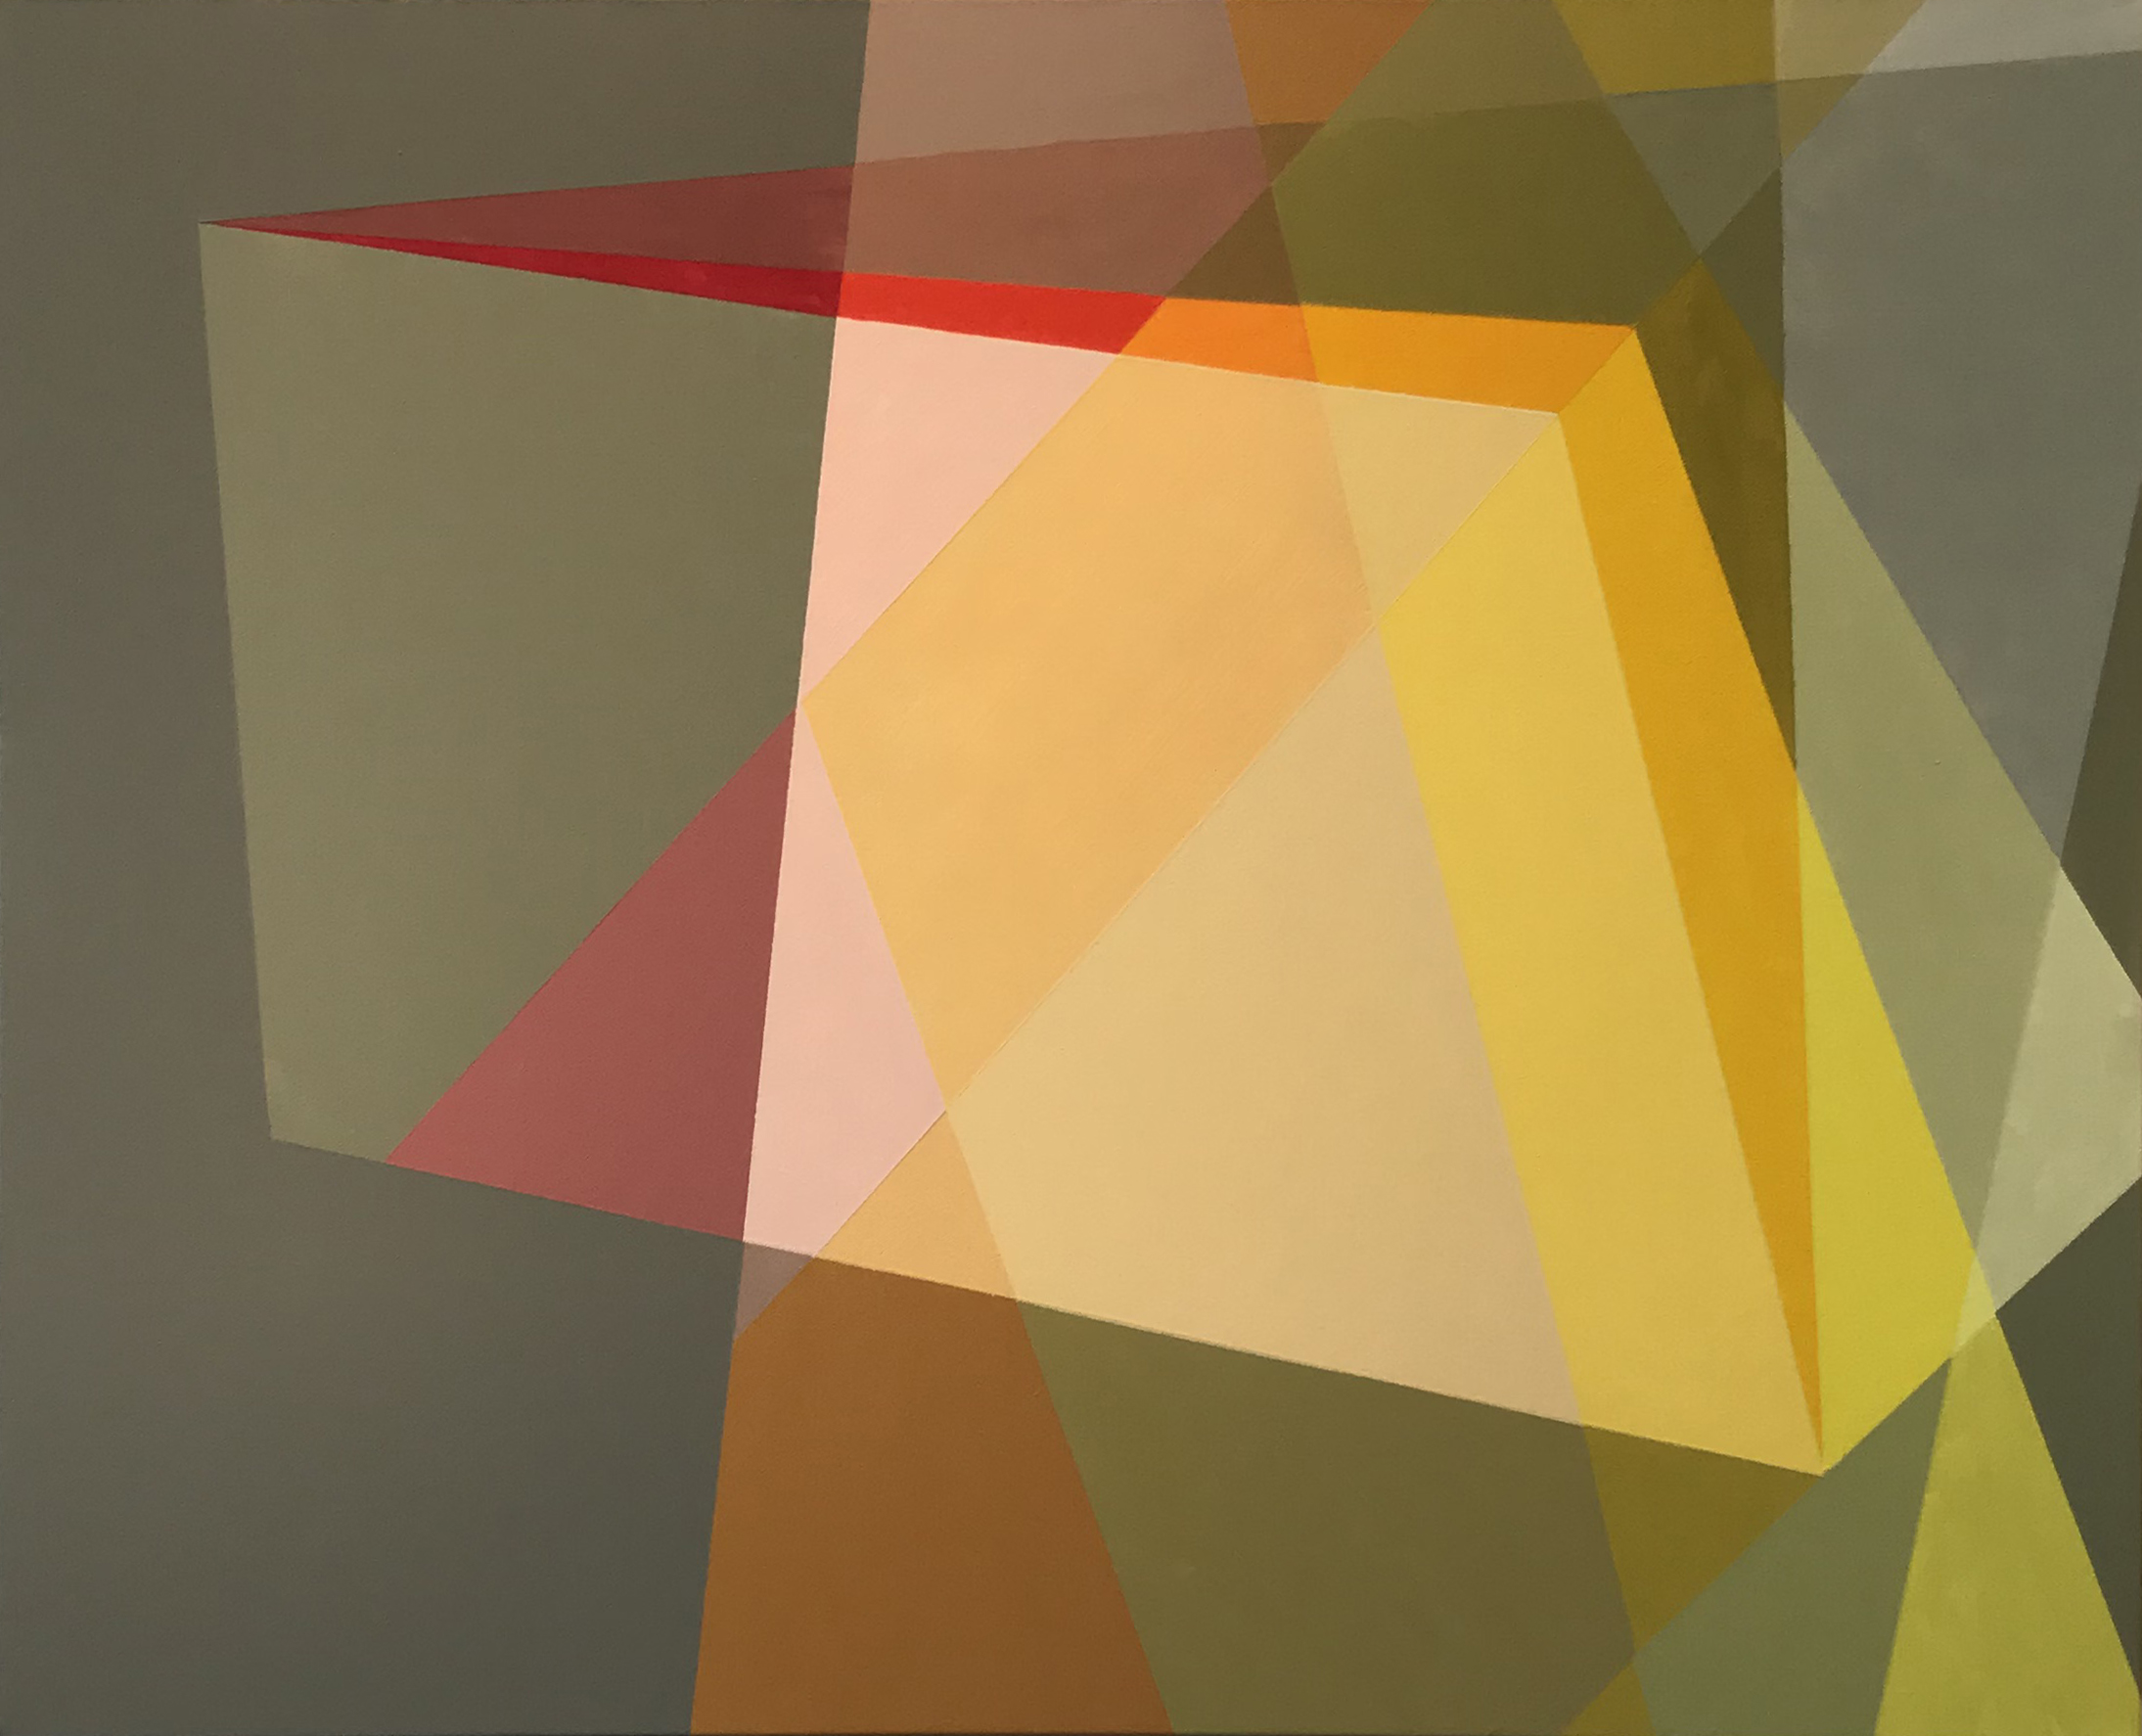 """Geometry, Visual Play InTipping Point Illustrate Giant Leap For Painter Don Cooper - """"I have little doubt that many viewers won't find dimensionality in these paintings at all, but most find them compelling in ways they find difficult to define. This is because the particular color combinations and unusual uses of familiar geometric forms create an effect that is ultimately unsettling but in a way that is profoundly pleasing. This work ought to be analyzed at leisure, in some other context, because it raises or touches on major issues of aesthetics and how perception is framed by prior assumptions and present expectations.""""View moreimage: Don Cooper, Falling Open, 2018, Acrylic on canvas, 24 x 30 in"""